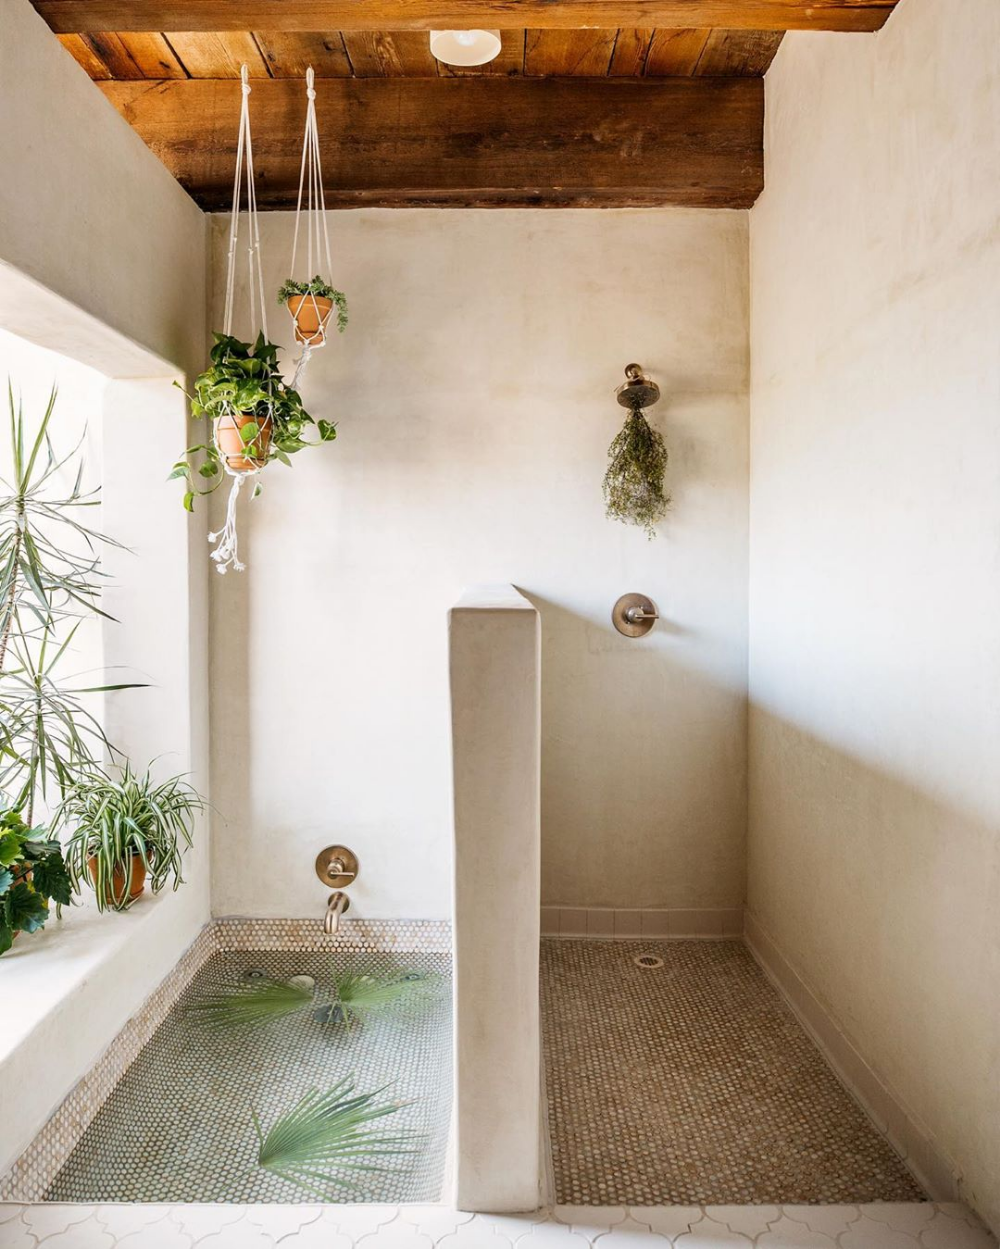 Marche Pour Monter Dans Baignoire it's been so hard waiting to show you all this bathroom—the